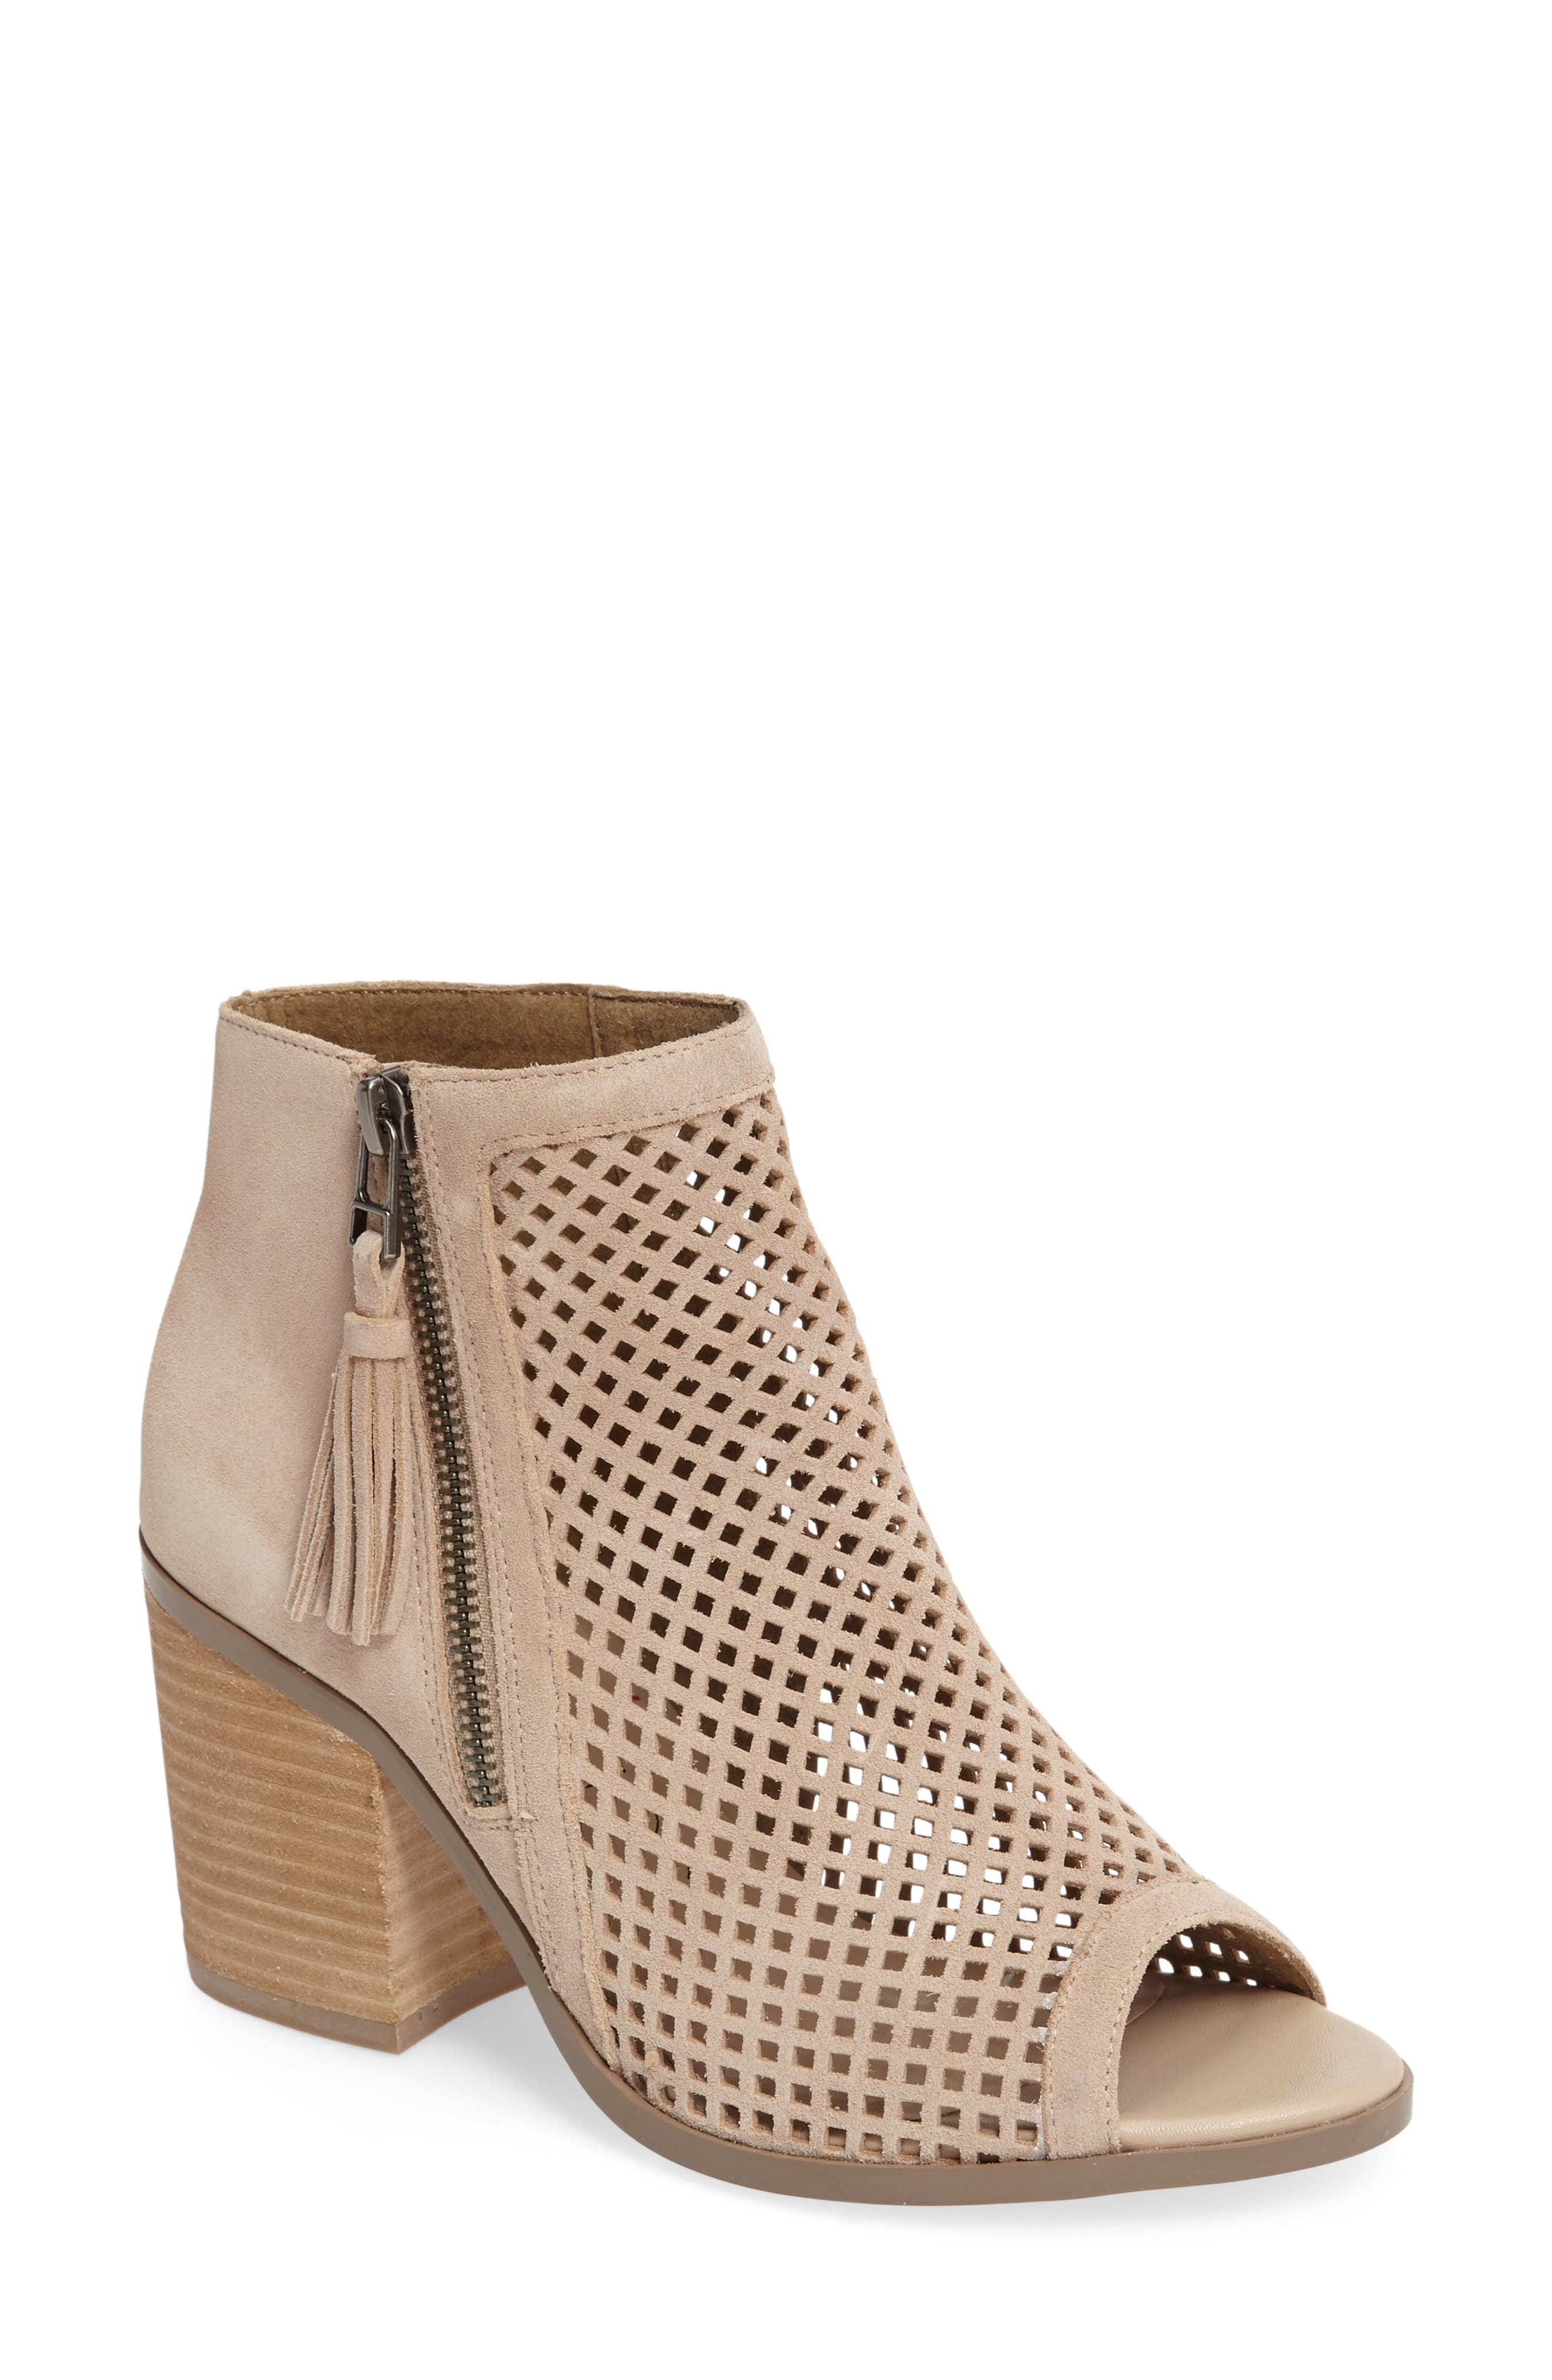 Alternate Image 1 Selected - Sole Society Dallas Peforated Peep Toe Bootie (Women)